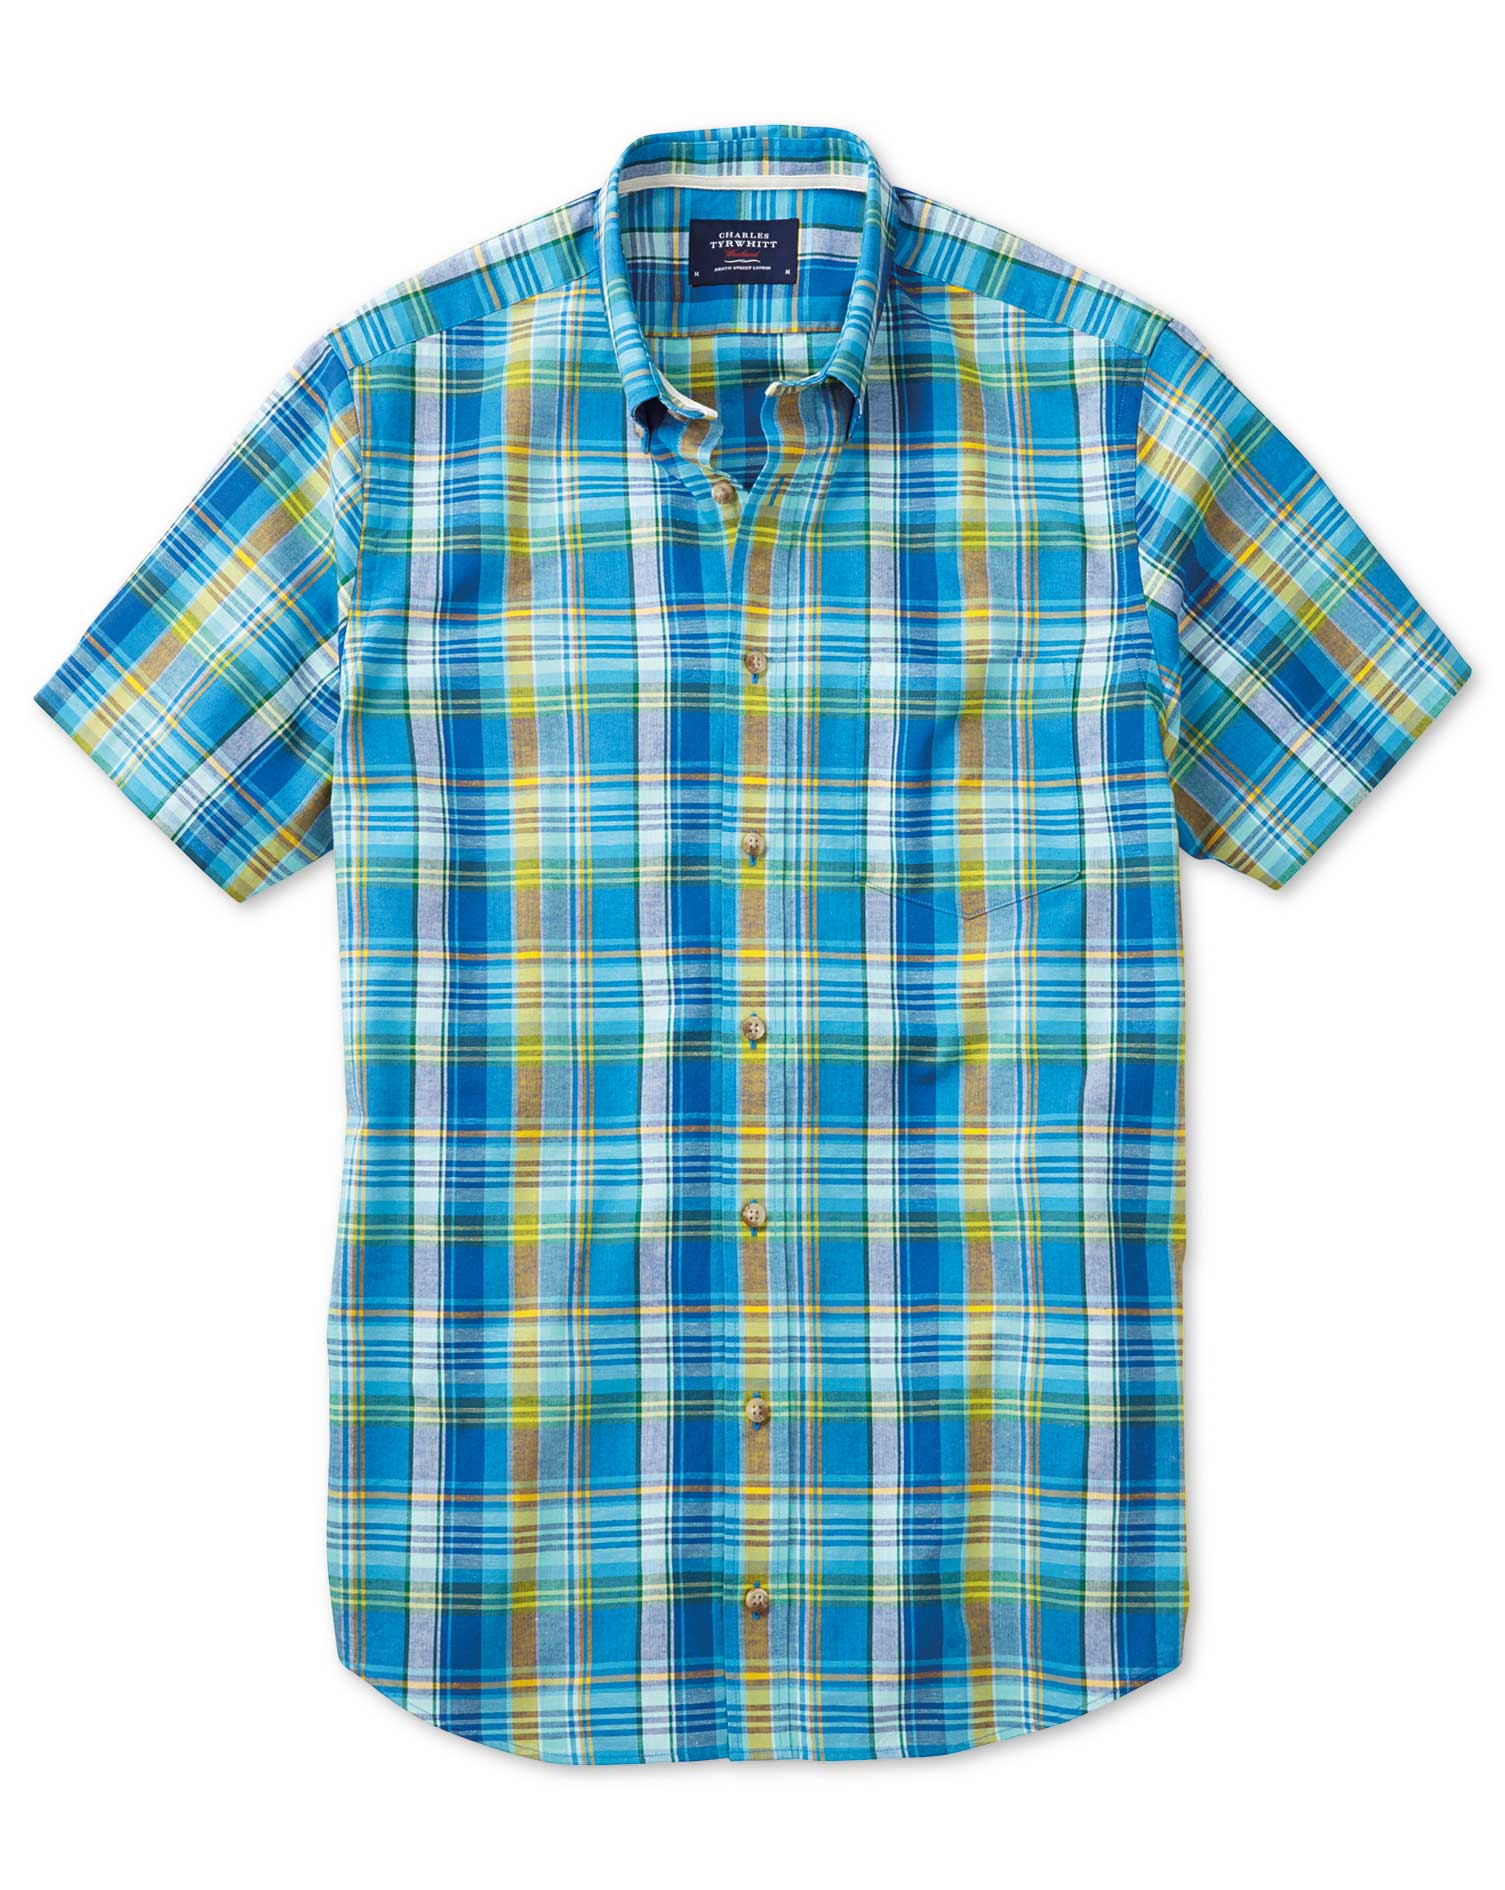 Slim Fit Short Sleeve Green and Blue Check Cotton Shirt Single Cuff Size Medium by Charles Tyrwhitt